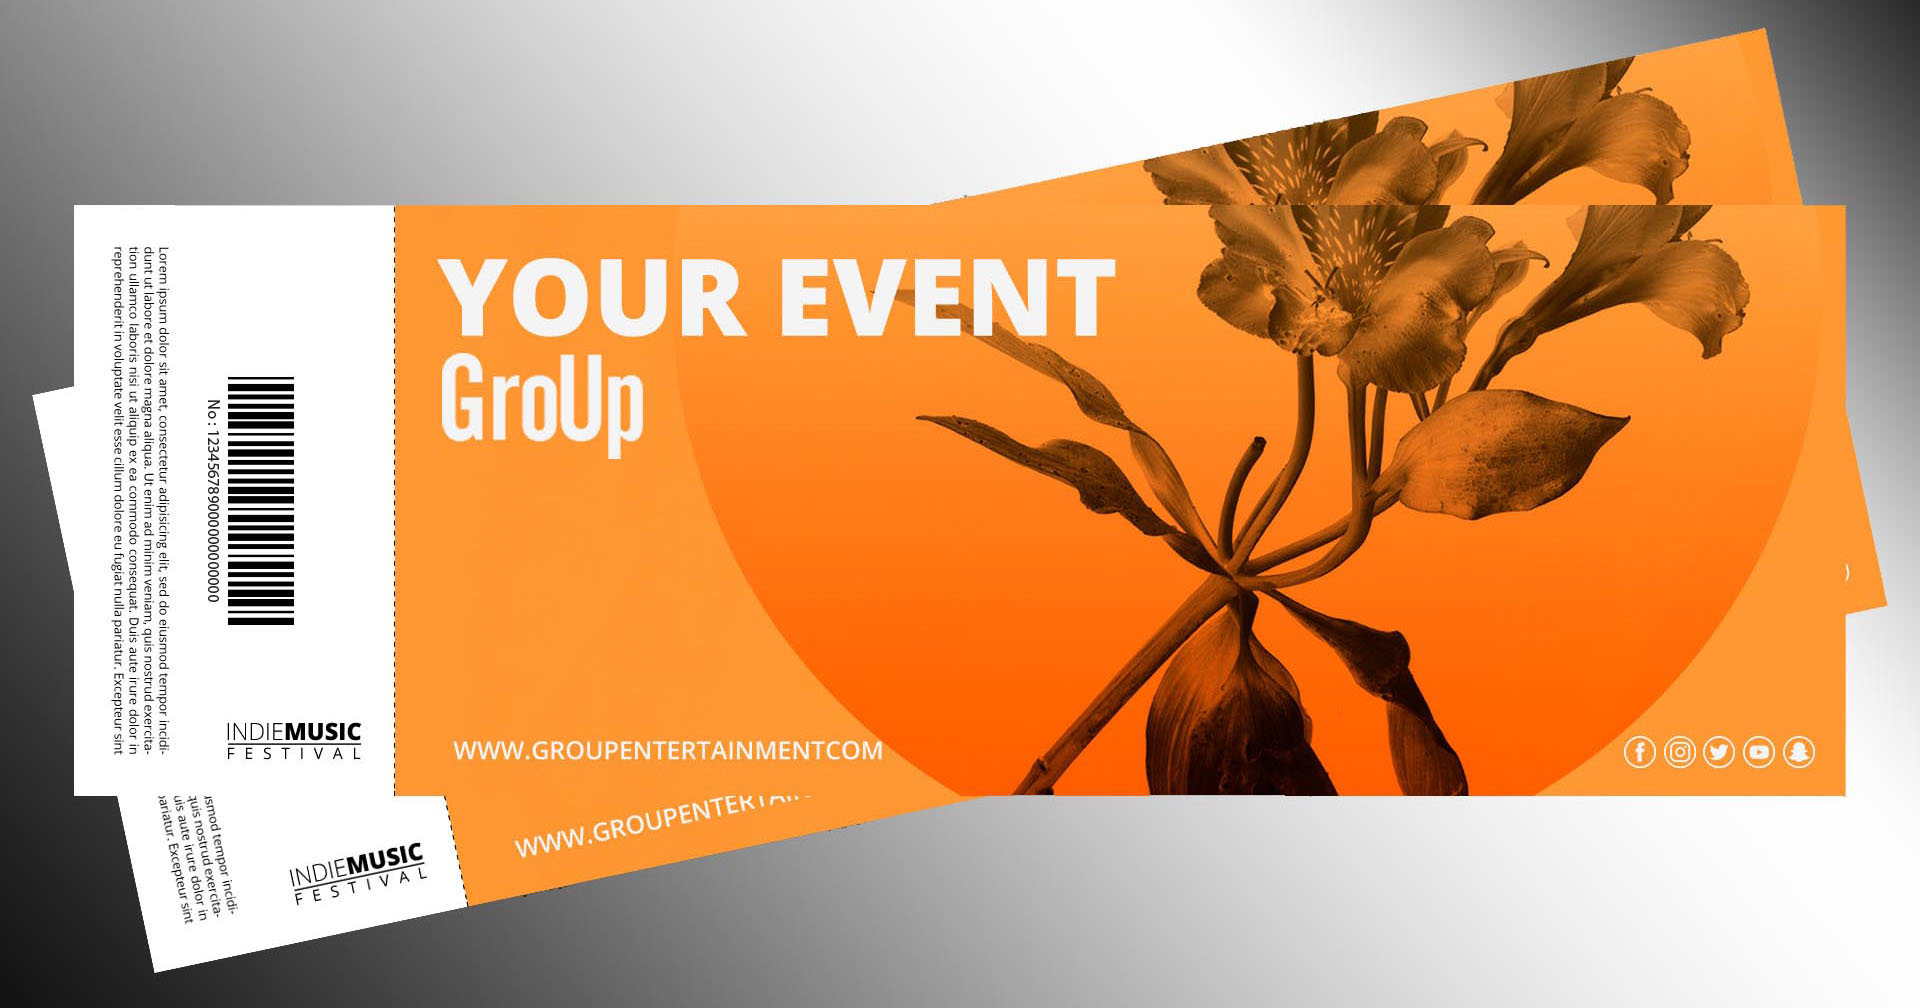 Group-Entertainment-Online-Ticketing-Services